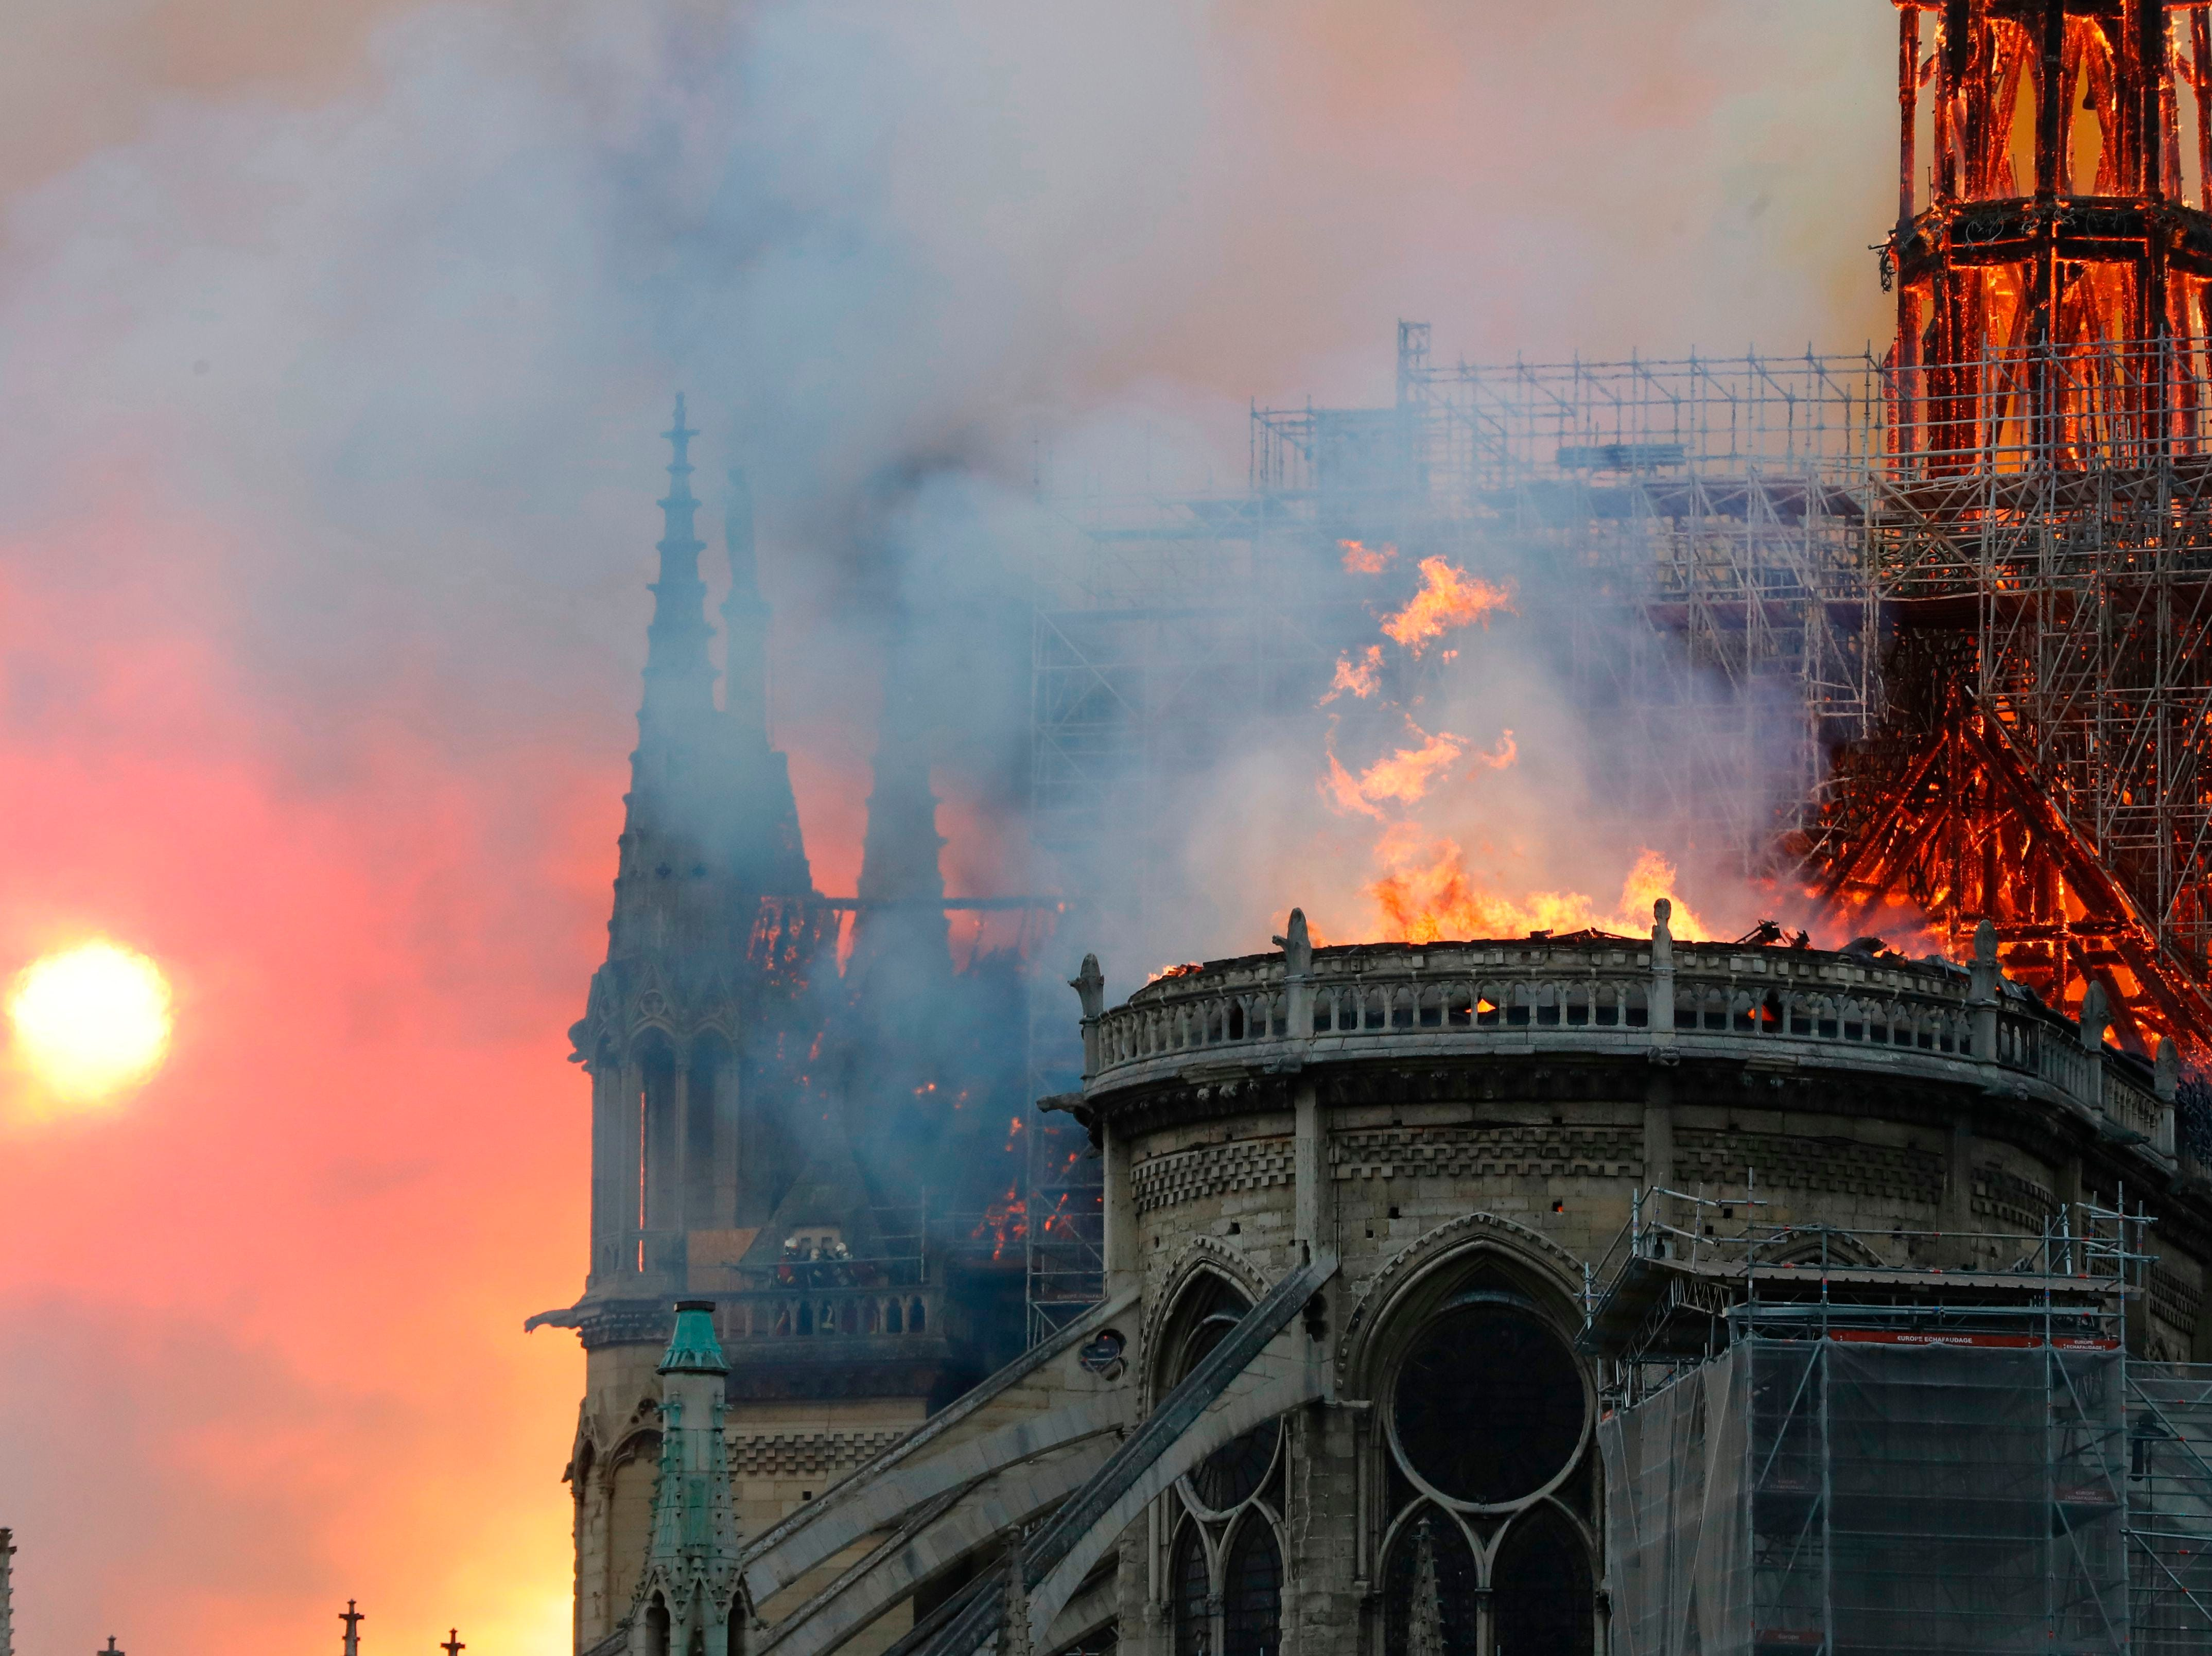 Smoke billows as flames destroy the roof of the landmark Notre-Dame Cathedral in central Paris on April 15, 2019.